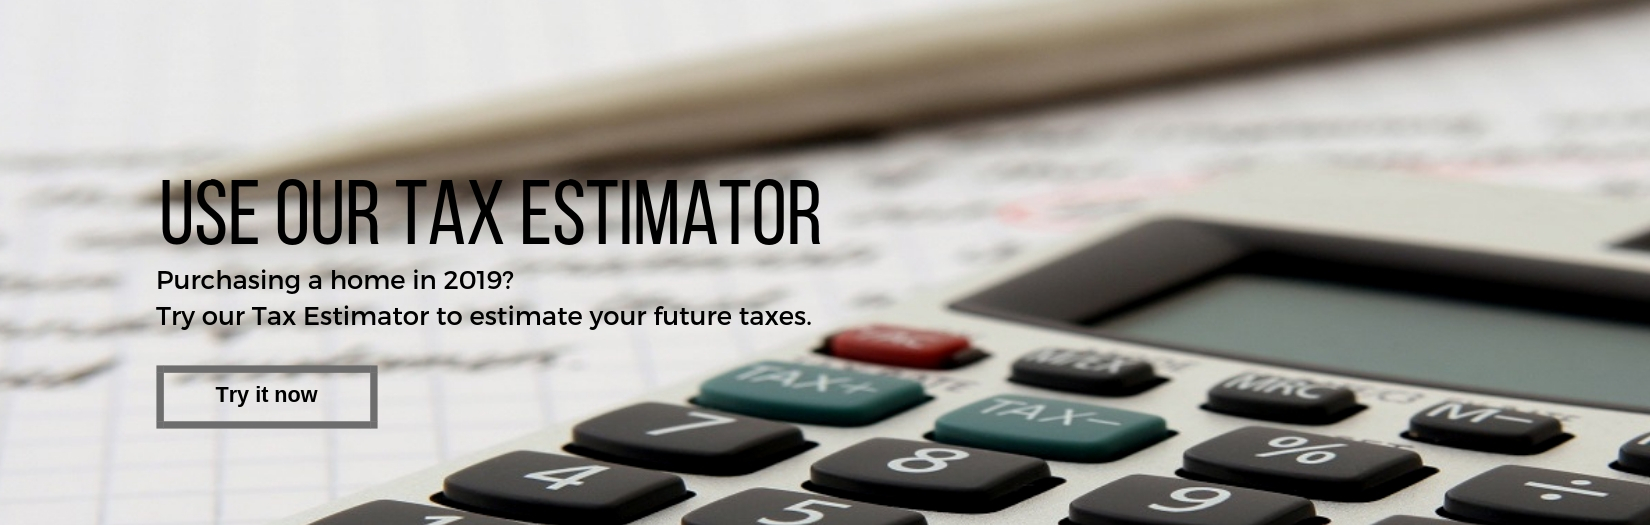 Tax Estimator Tool